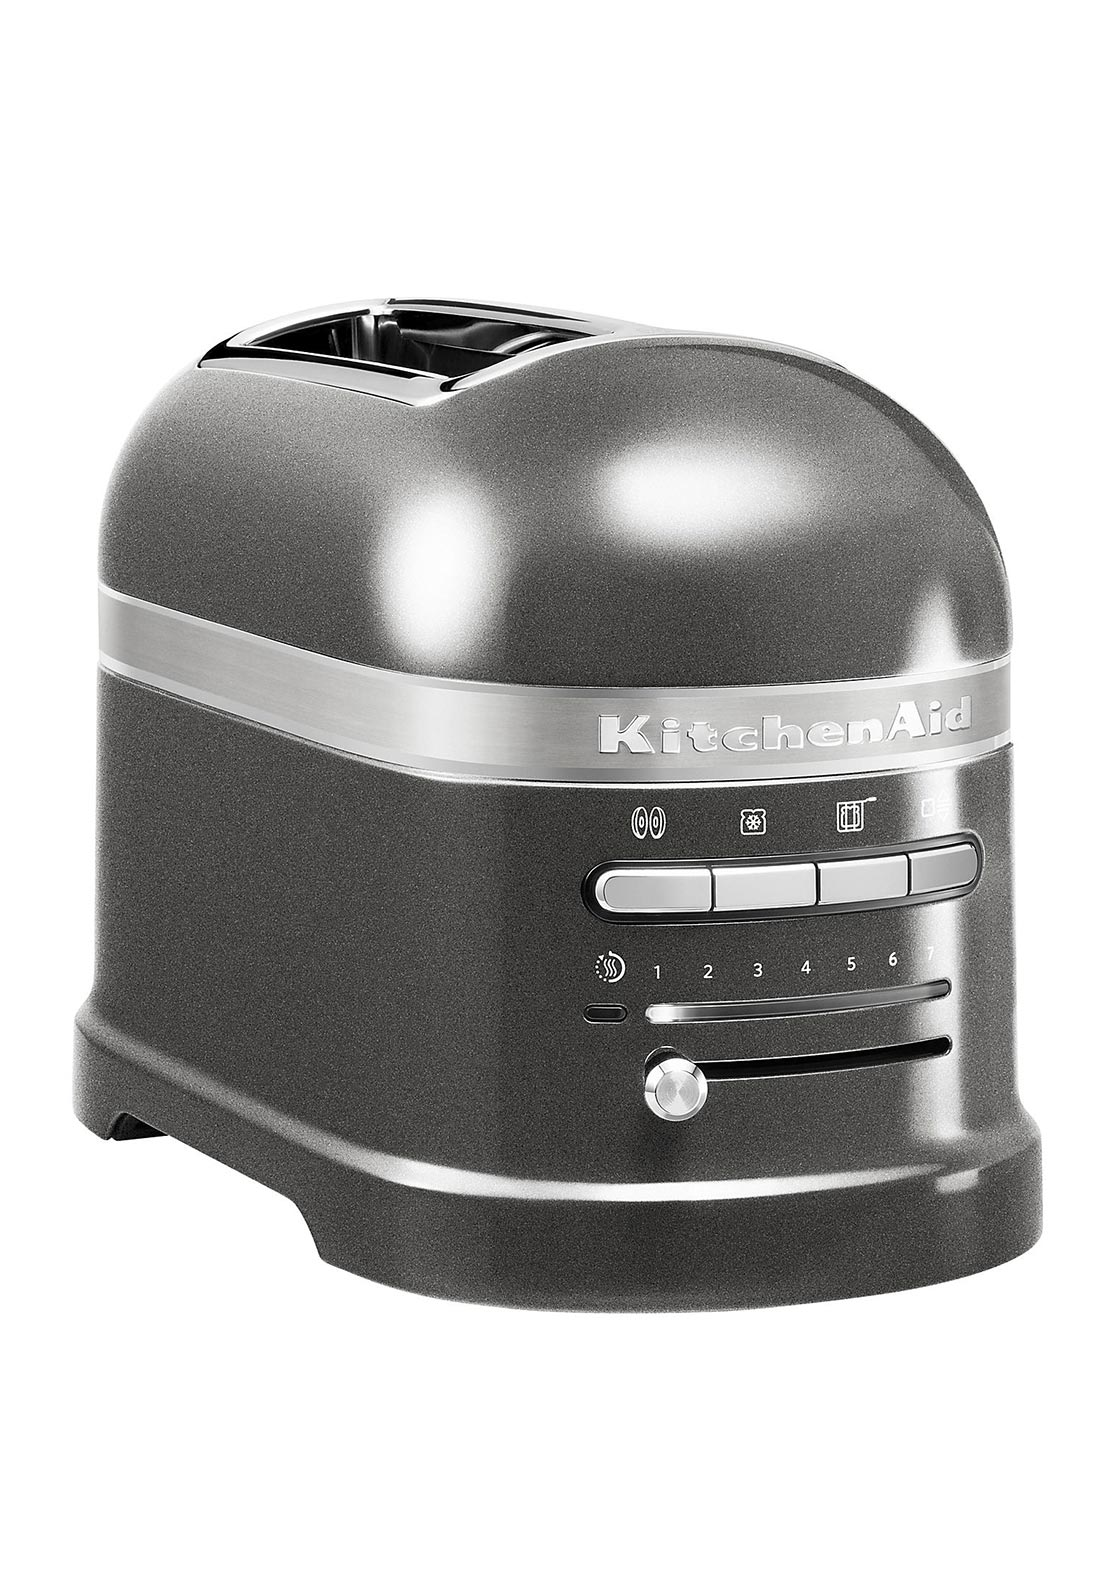 KitchenAid Artisan Two Slice Toaster, Medallion Silver